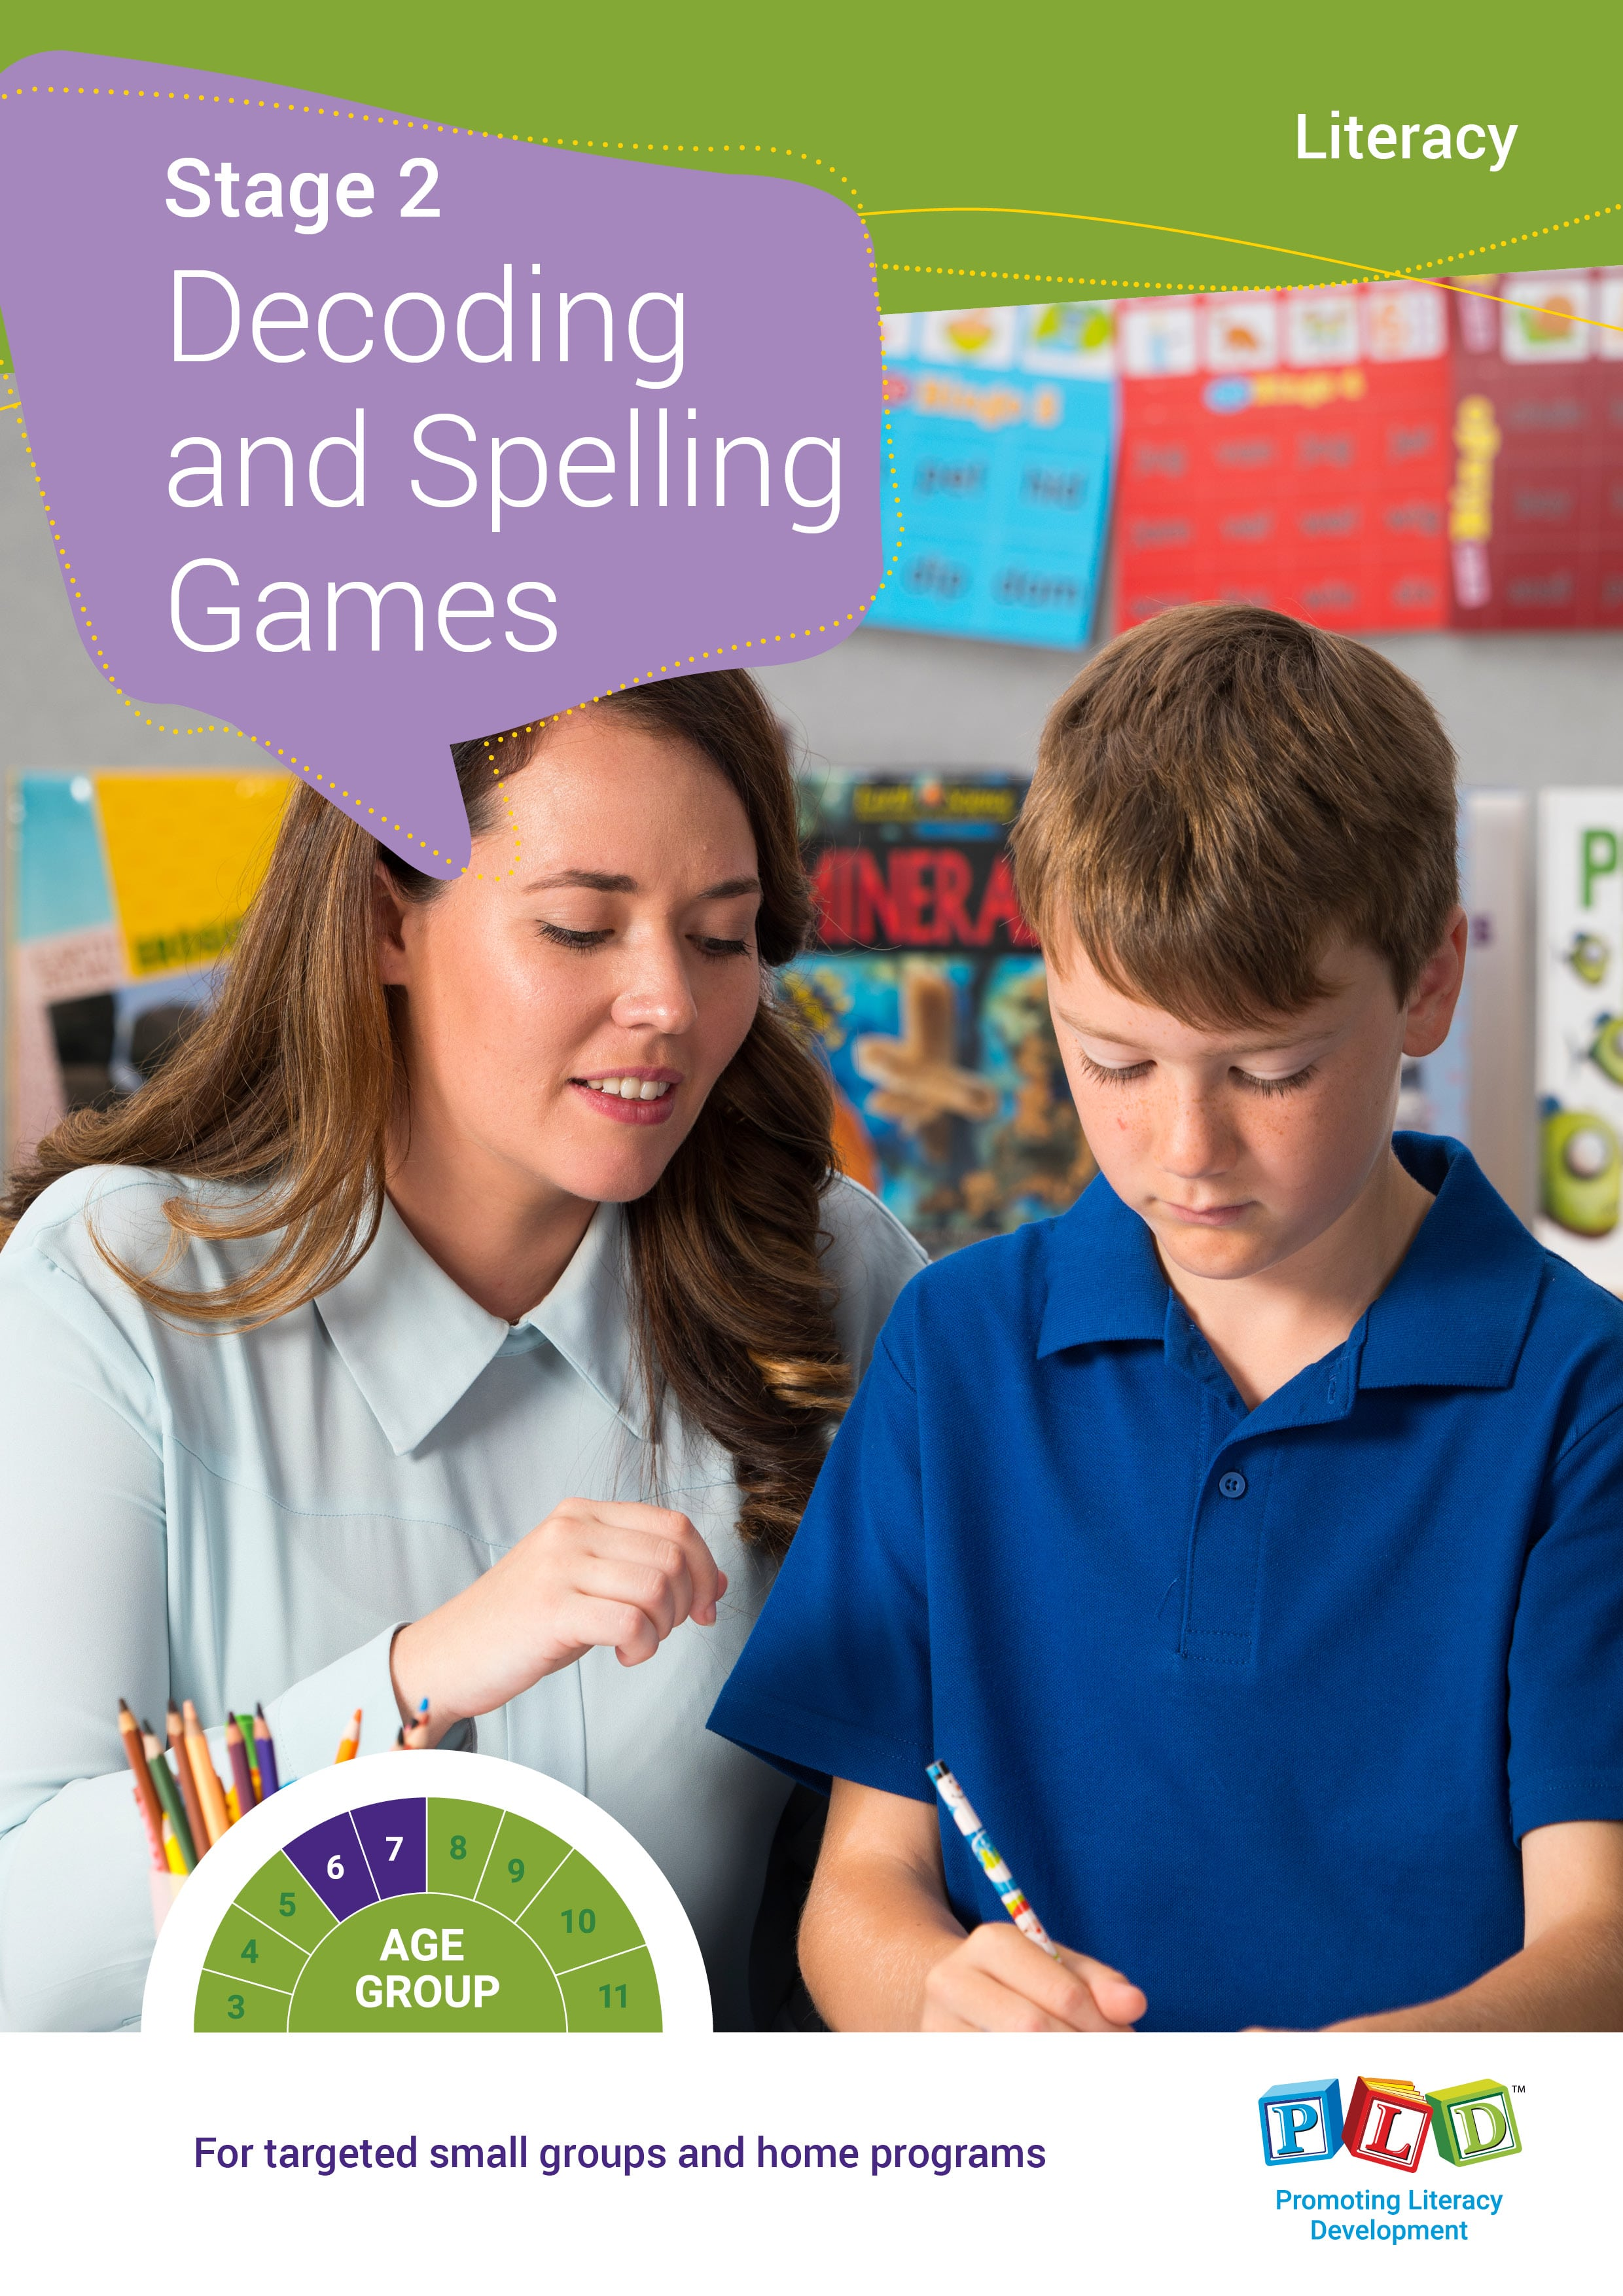 Stage 2 Decoding and Spelling Games